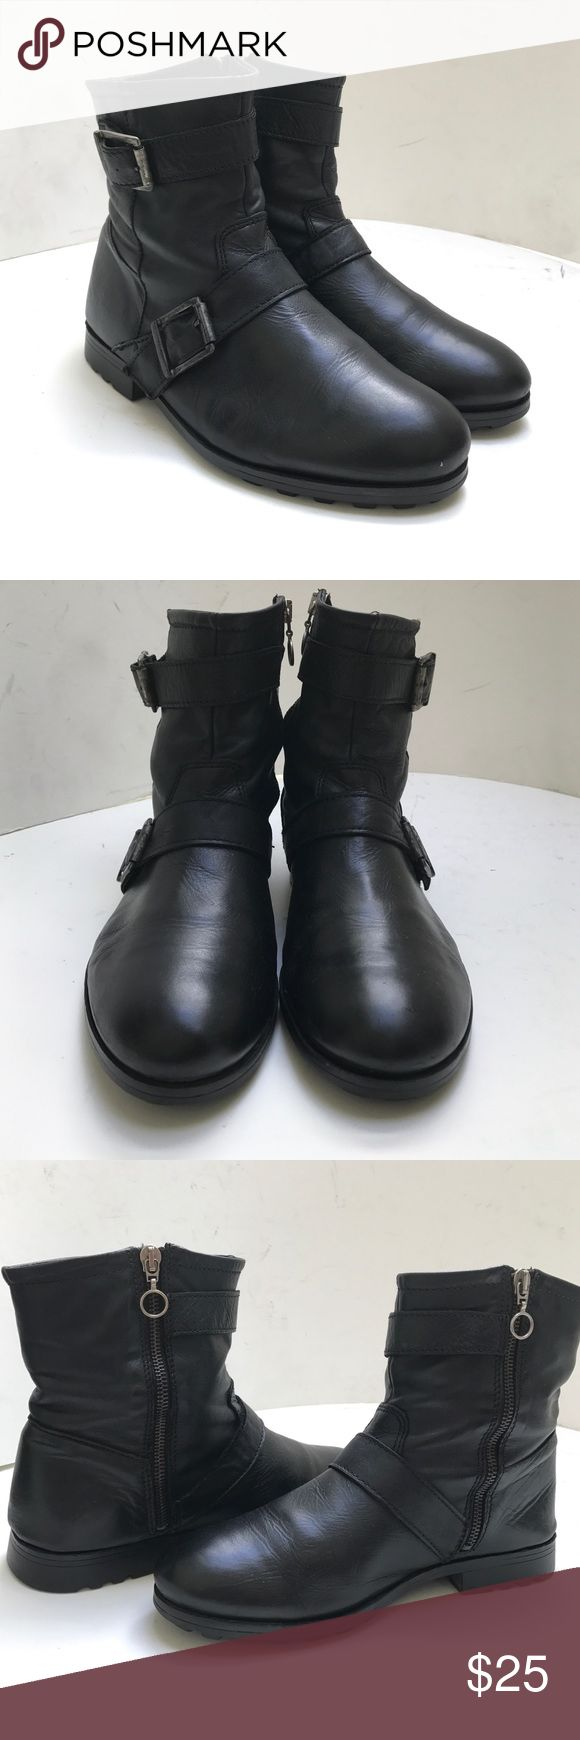 Top Shop ' Animal' black biker Moro ankle boot Hit refresh on biker boot with this strapped leather boot. Shaped with a rounded toe and strapped buckle details for plenty of attitude. 100% leather, size 39. Condition: very good with some creasing in leather from wear. Shoes Ankle Boots & Booties